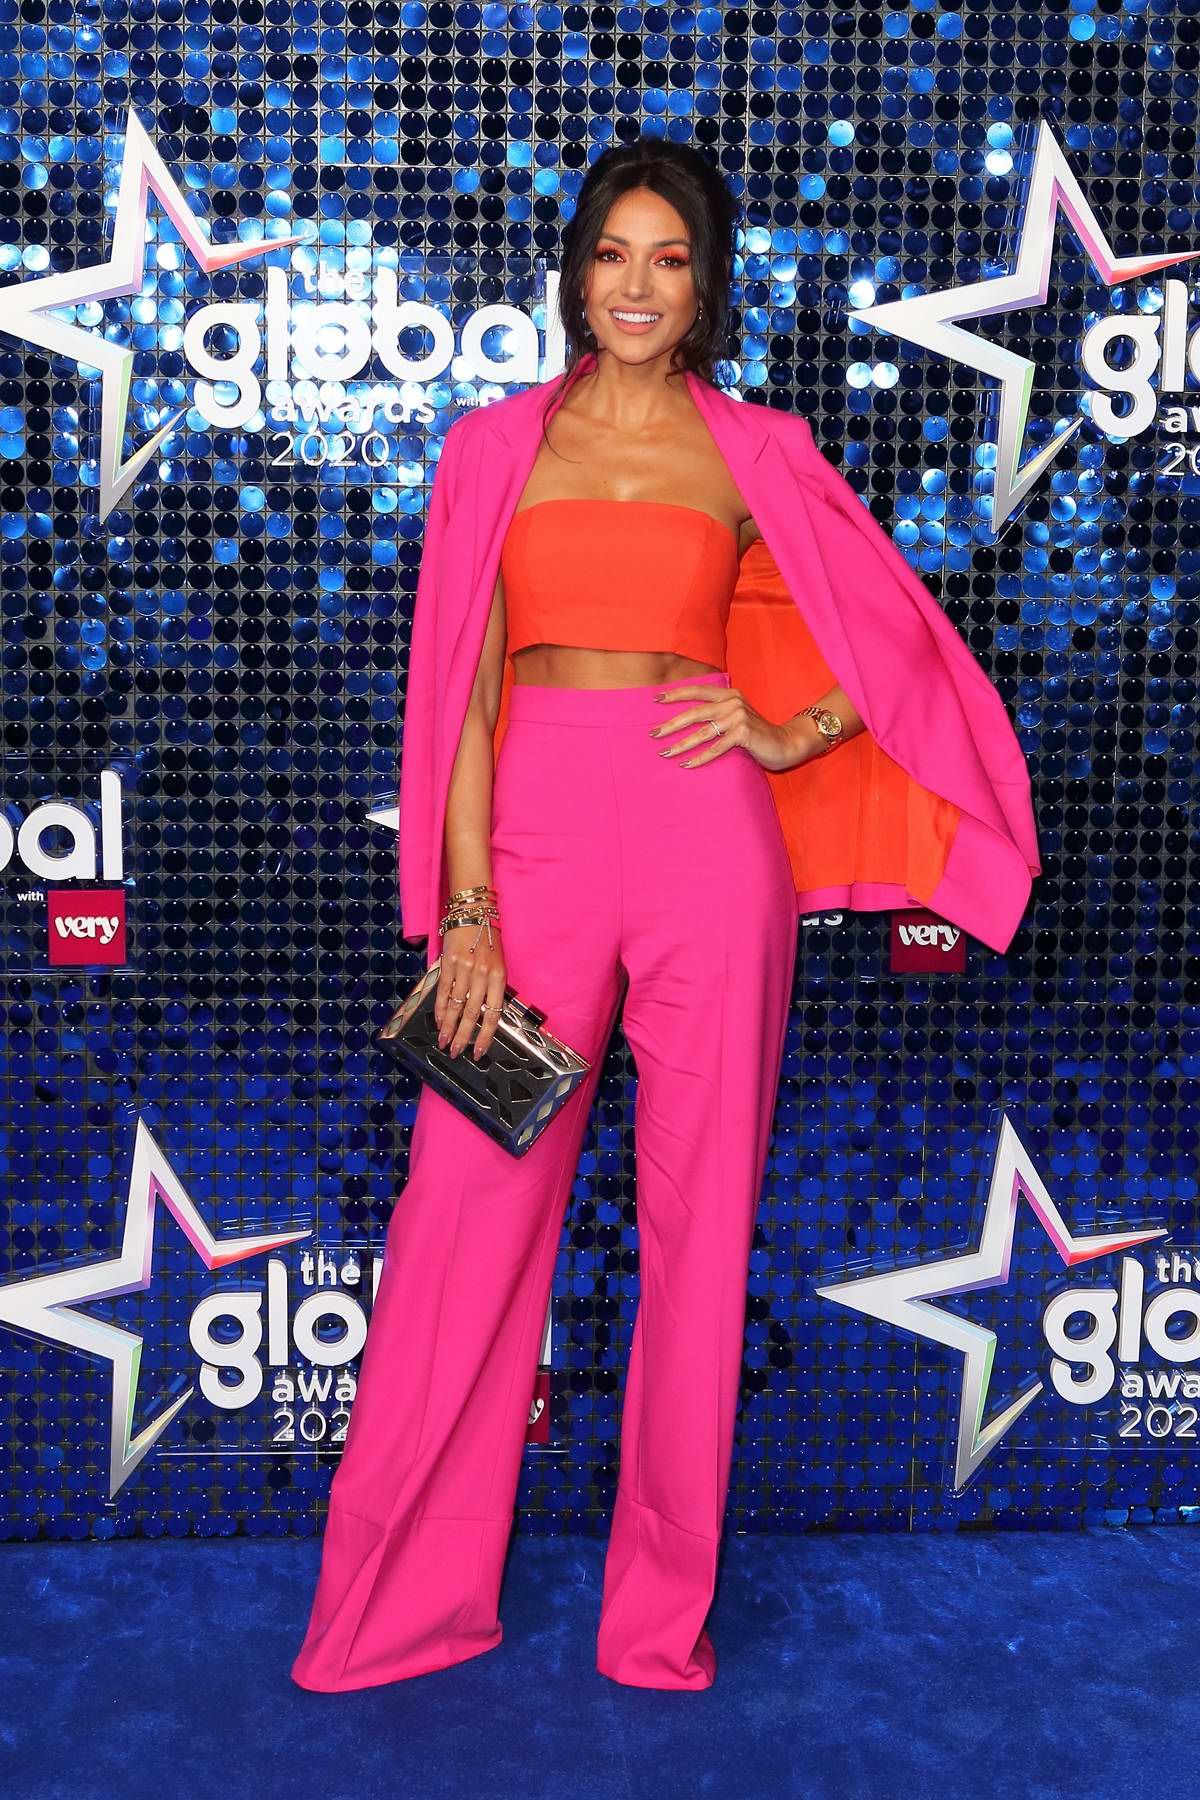 Michelle Keegan attends The Global Awards 2020 at Eventim Apollo in London, UK